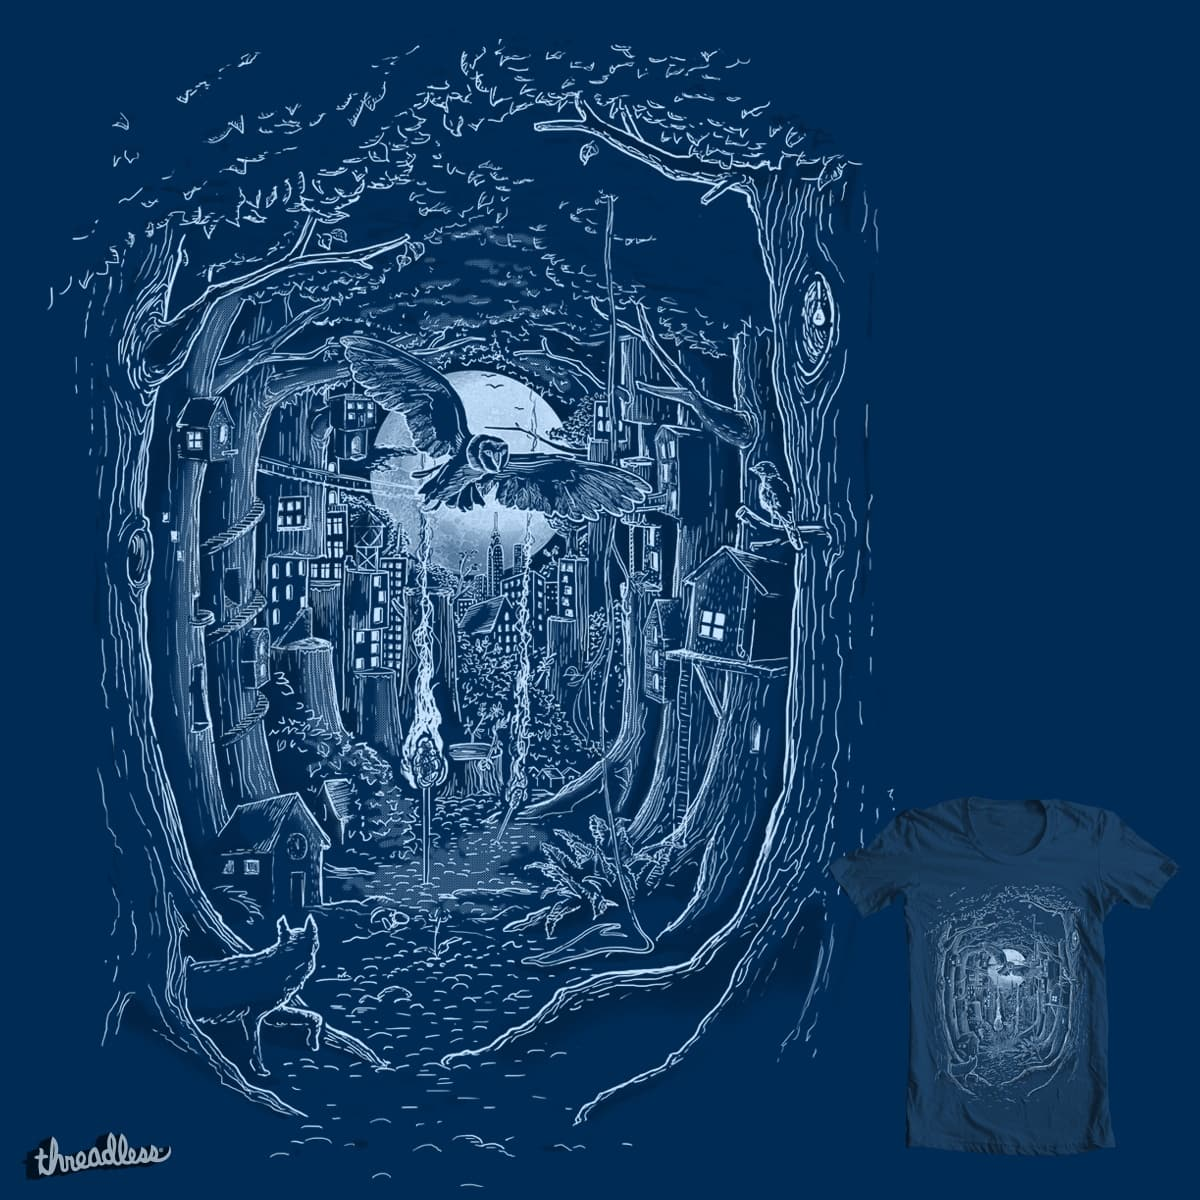 Through the Forest by sausage_moe on Threadless